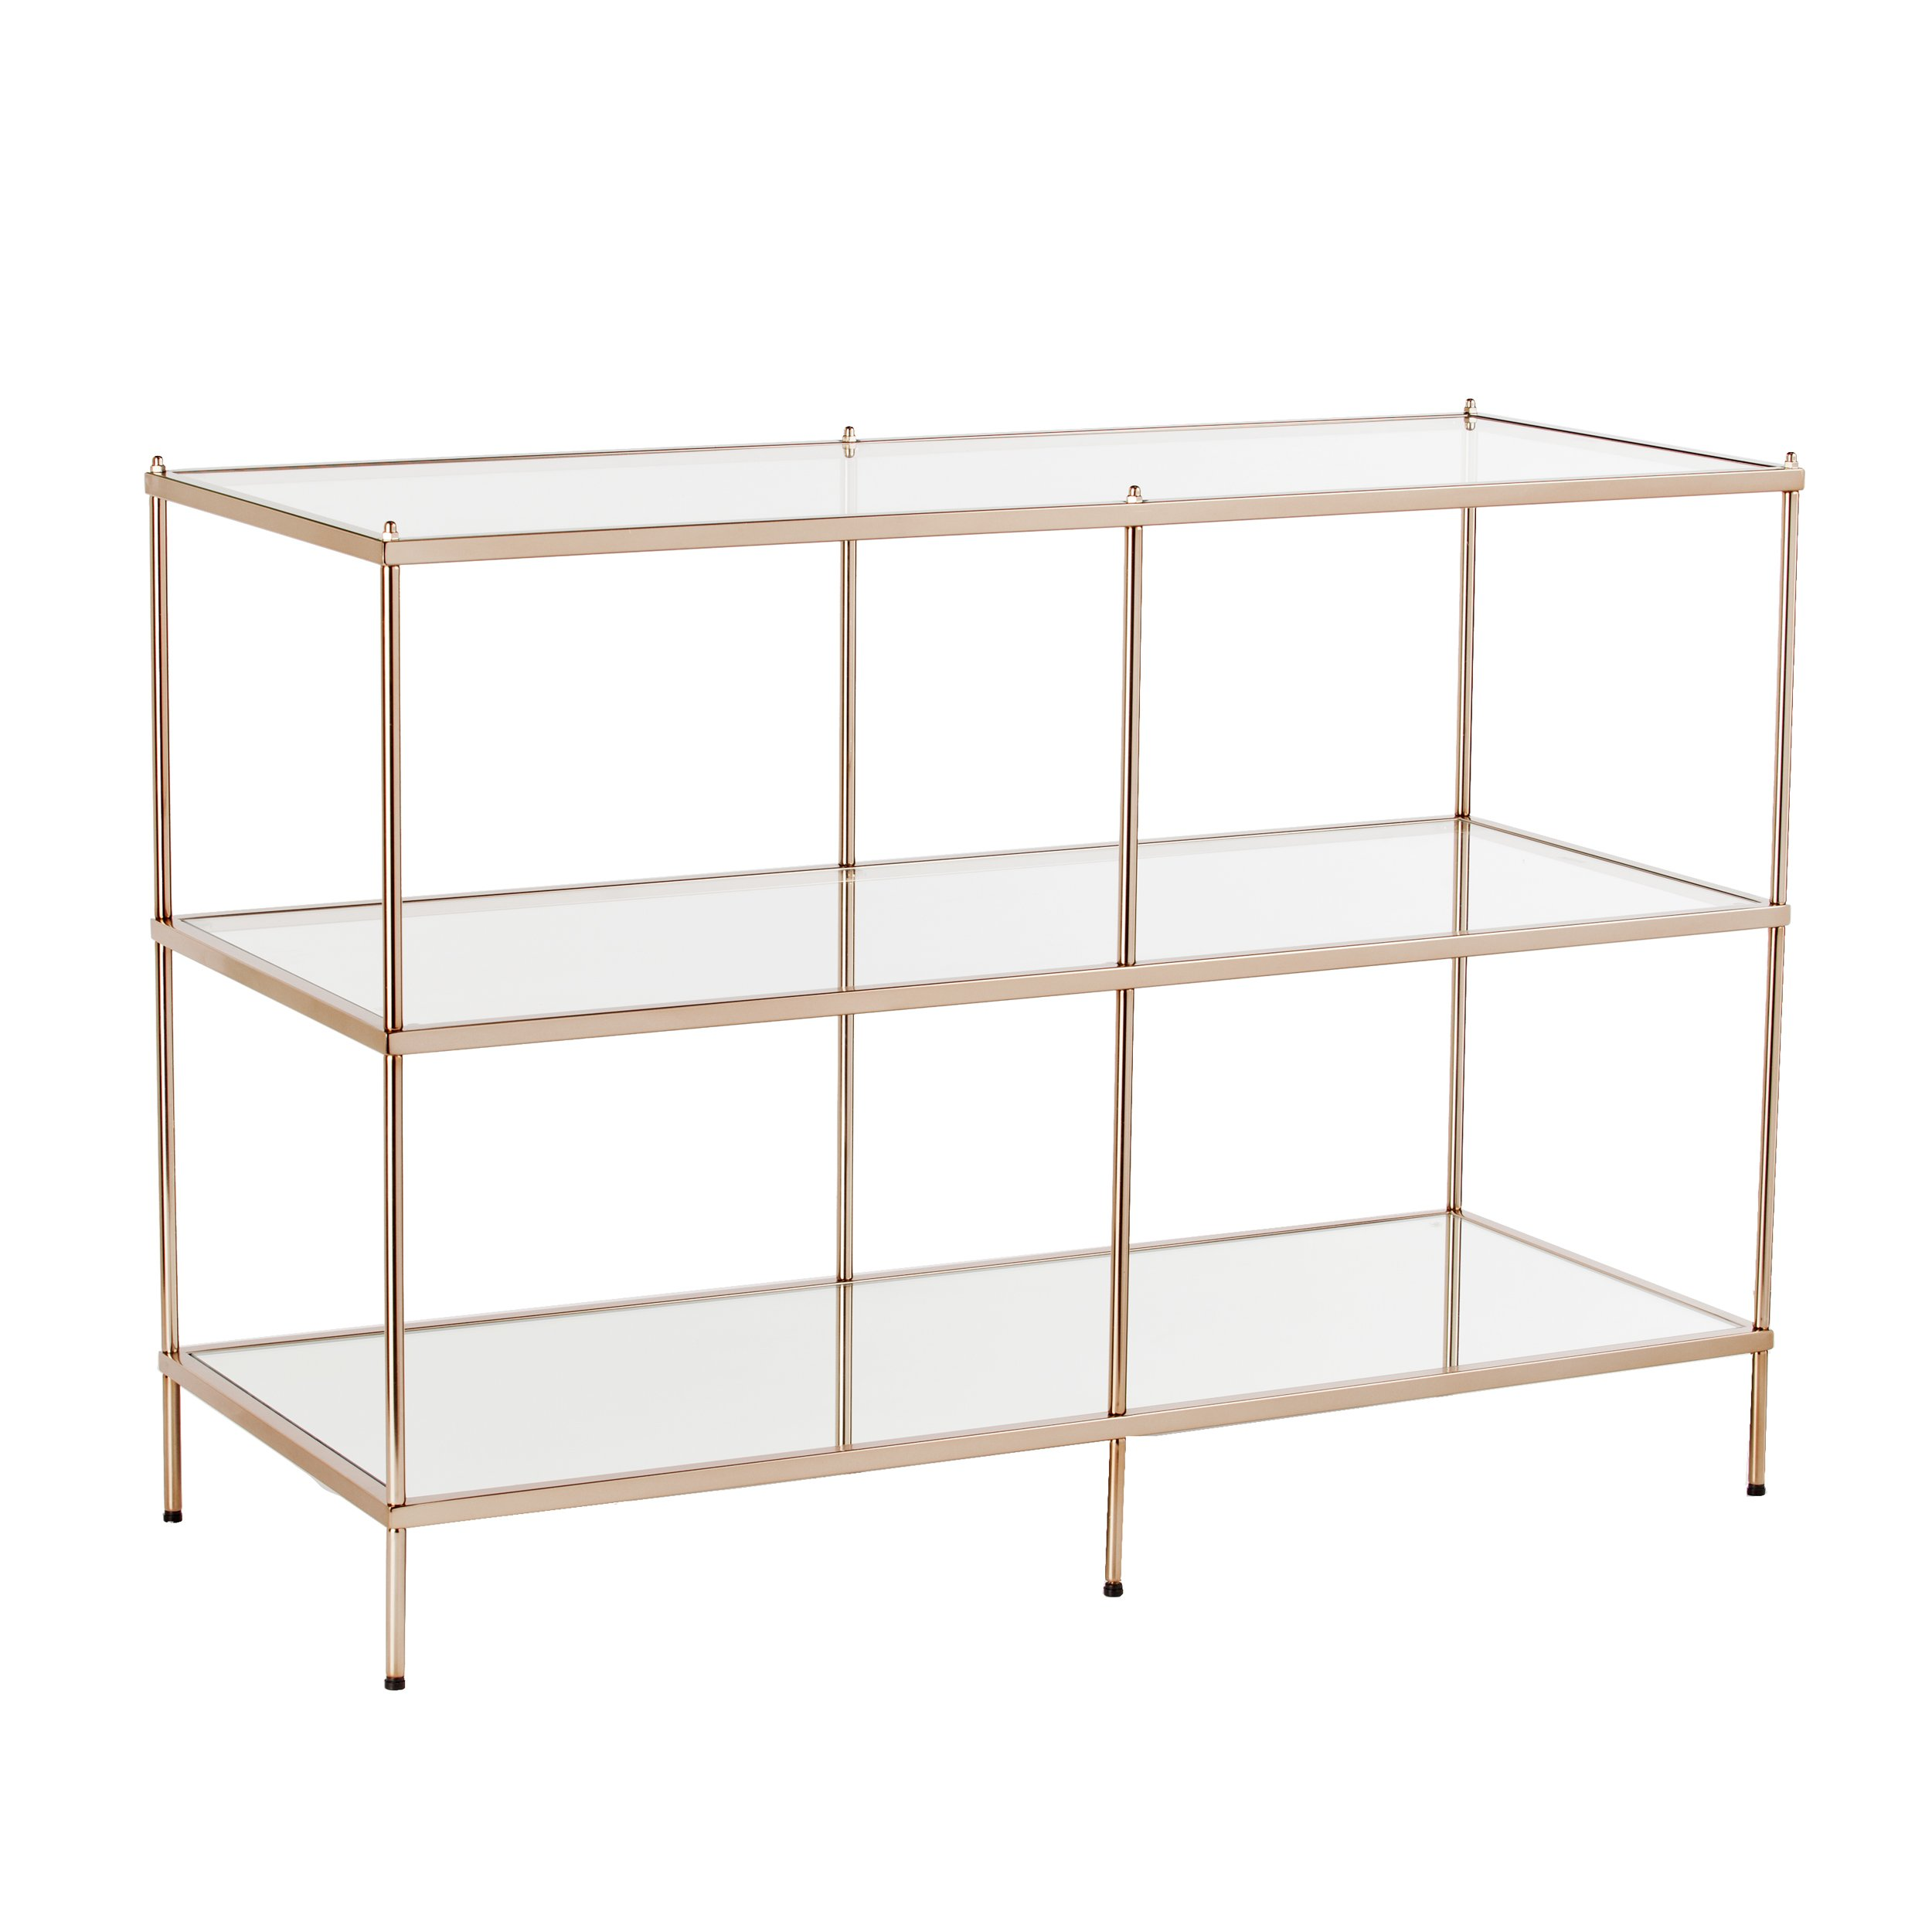 Knox Console Table - Metallic Gold Metal Frame w/ Glass Tops - Glam Style Décor by Southern Enterprises